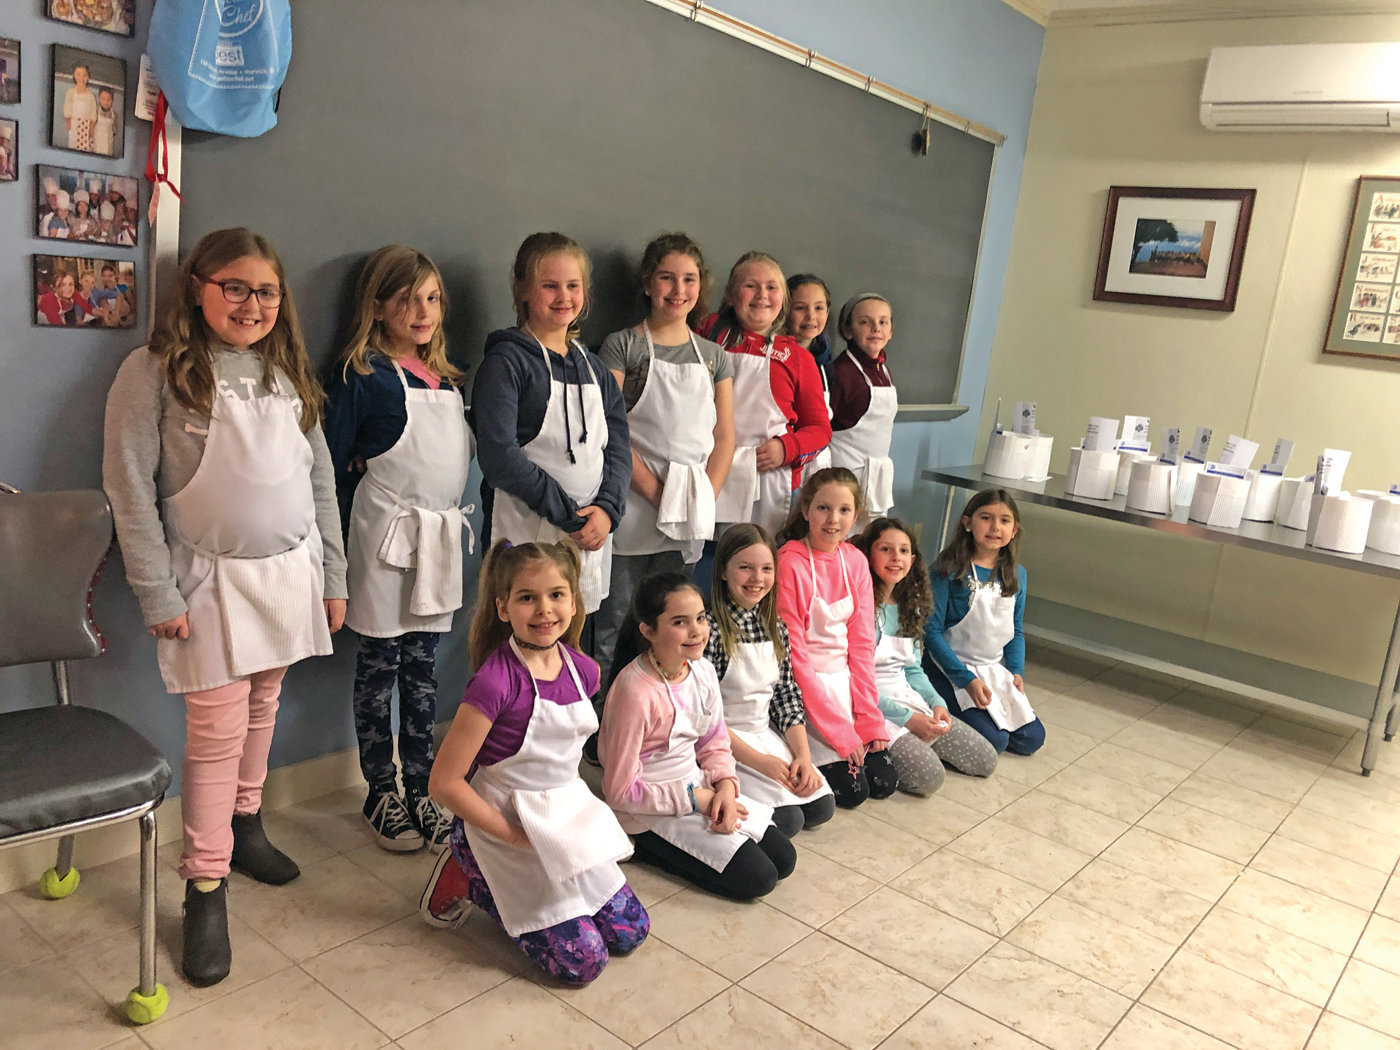 COOKIES FOR A CAUSE: The members of Warwick Girl Scout Troop 513 donated their cookie money to buy a goat for Haiti villagers. Pictured are Ryleigh Caruso, Maddy Scott, Jadyn Joyce, Addison Riess, Riley McLaughlin, Talia Booth, Molly LaTour, Aubrey Jessop, Grace Flodin, Lena Morrison, Jane Fontaine, Emma Arena and Abby Caruso. Not pictured is Kaydence Quenga.